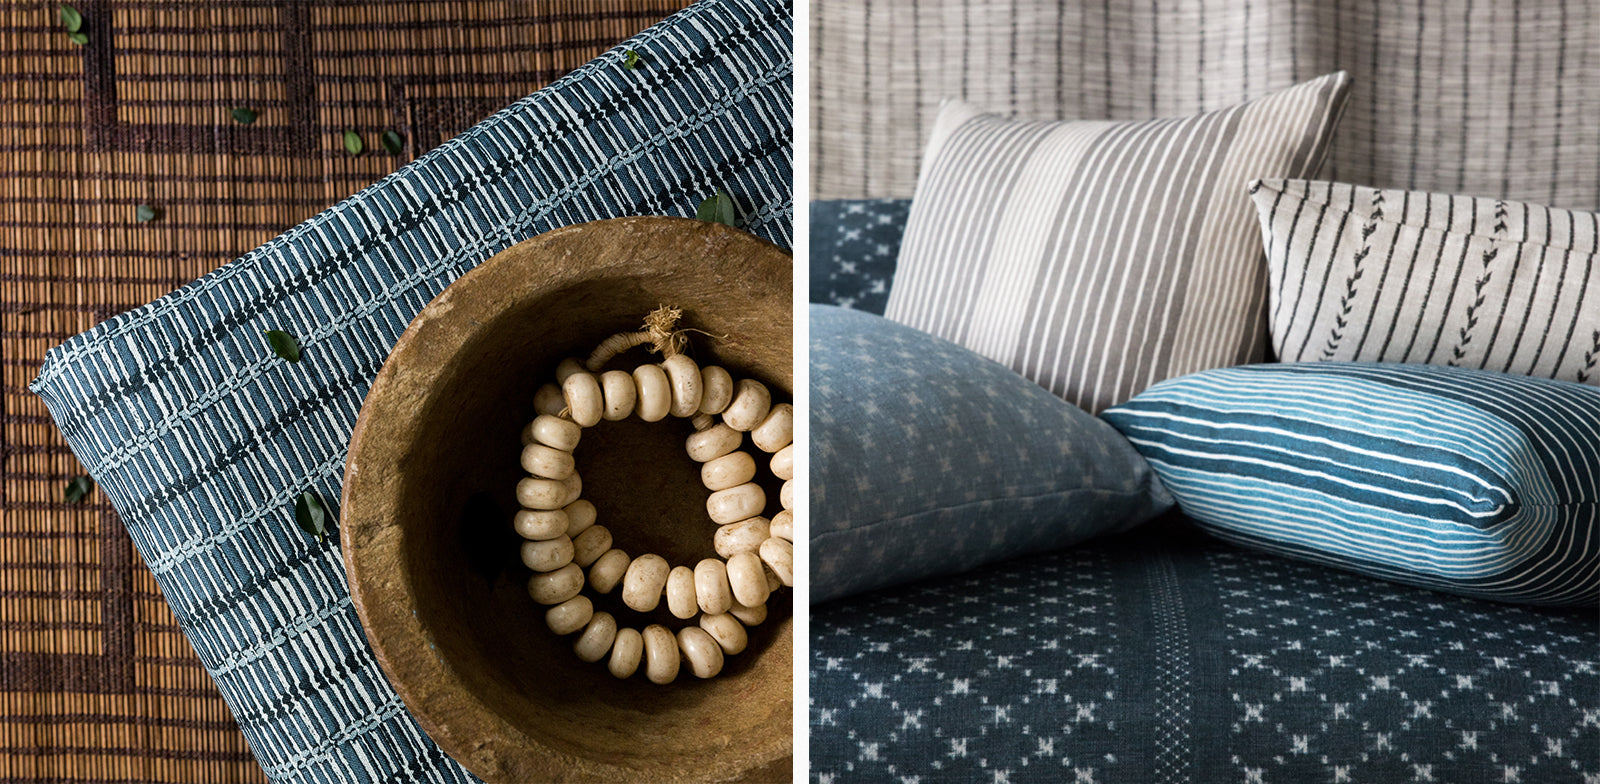 AS A TEXTILE DESIGNER, HOW DO YOU LIVE WITH PATTERN IN YOUR HOME?